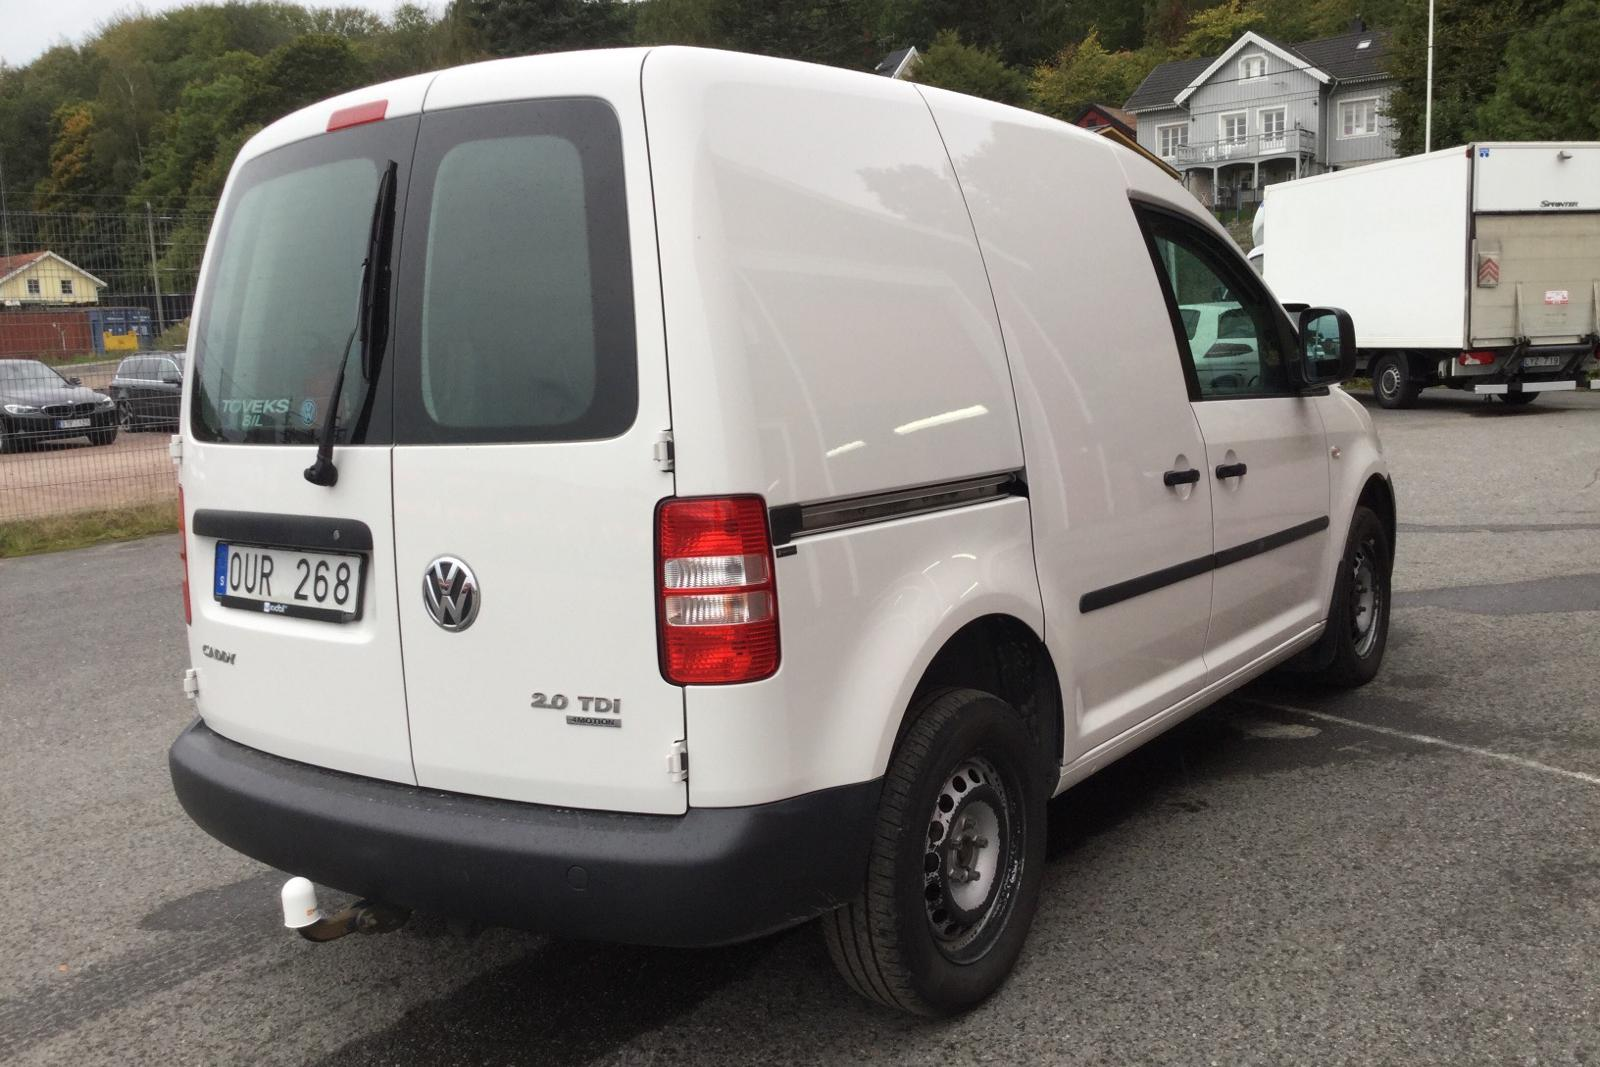 VW Caddy 2.0 TDI Skåp 4-motion (110hk) - 0 km - Manual - white - 2012